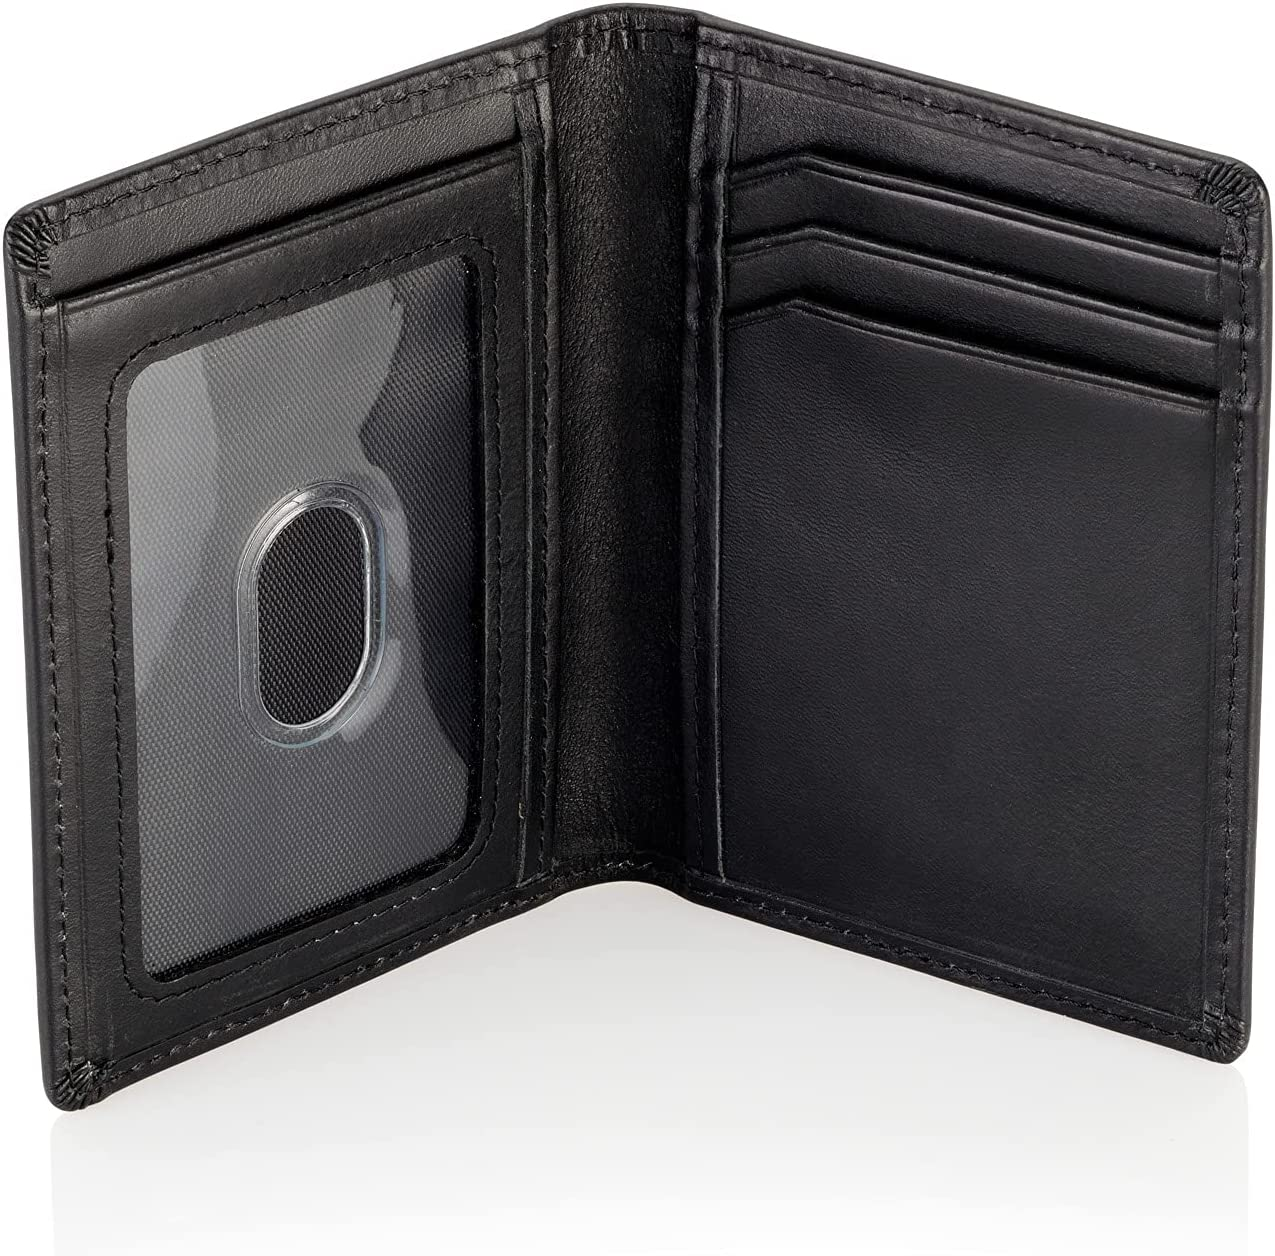 Stealth Mode Men's Slim Front Pocket Wallet - RFID Blocking, Thin Minimalist Bifold Design, Genuine Leather - ID Badge Window and 5 Sleeves for Money, Credit and Debit Cards, Driver's License - Black